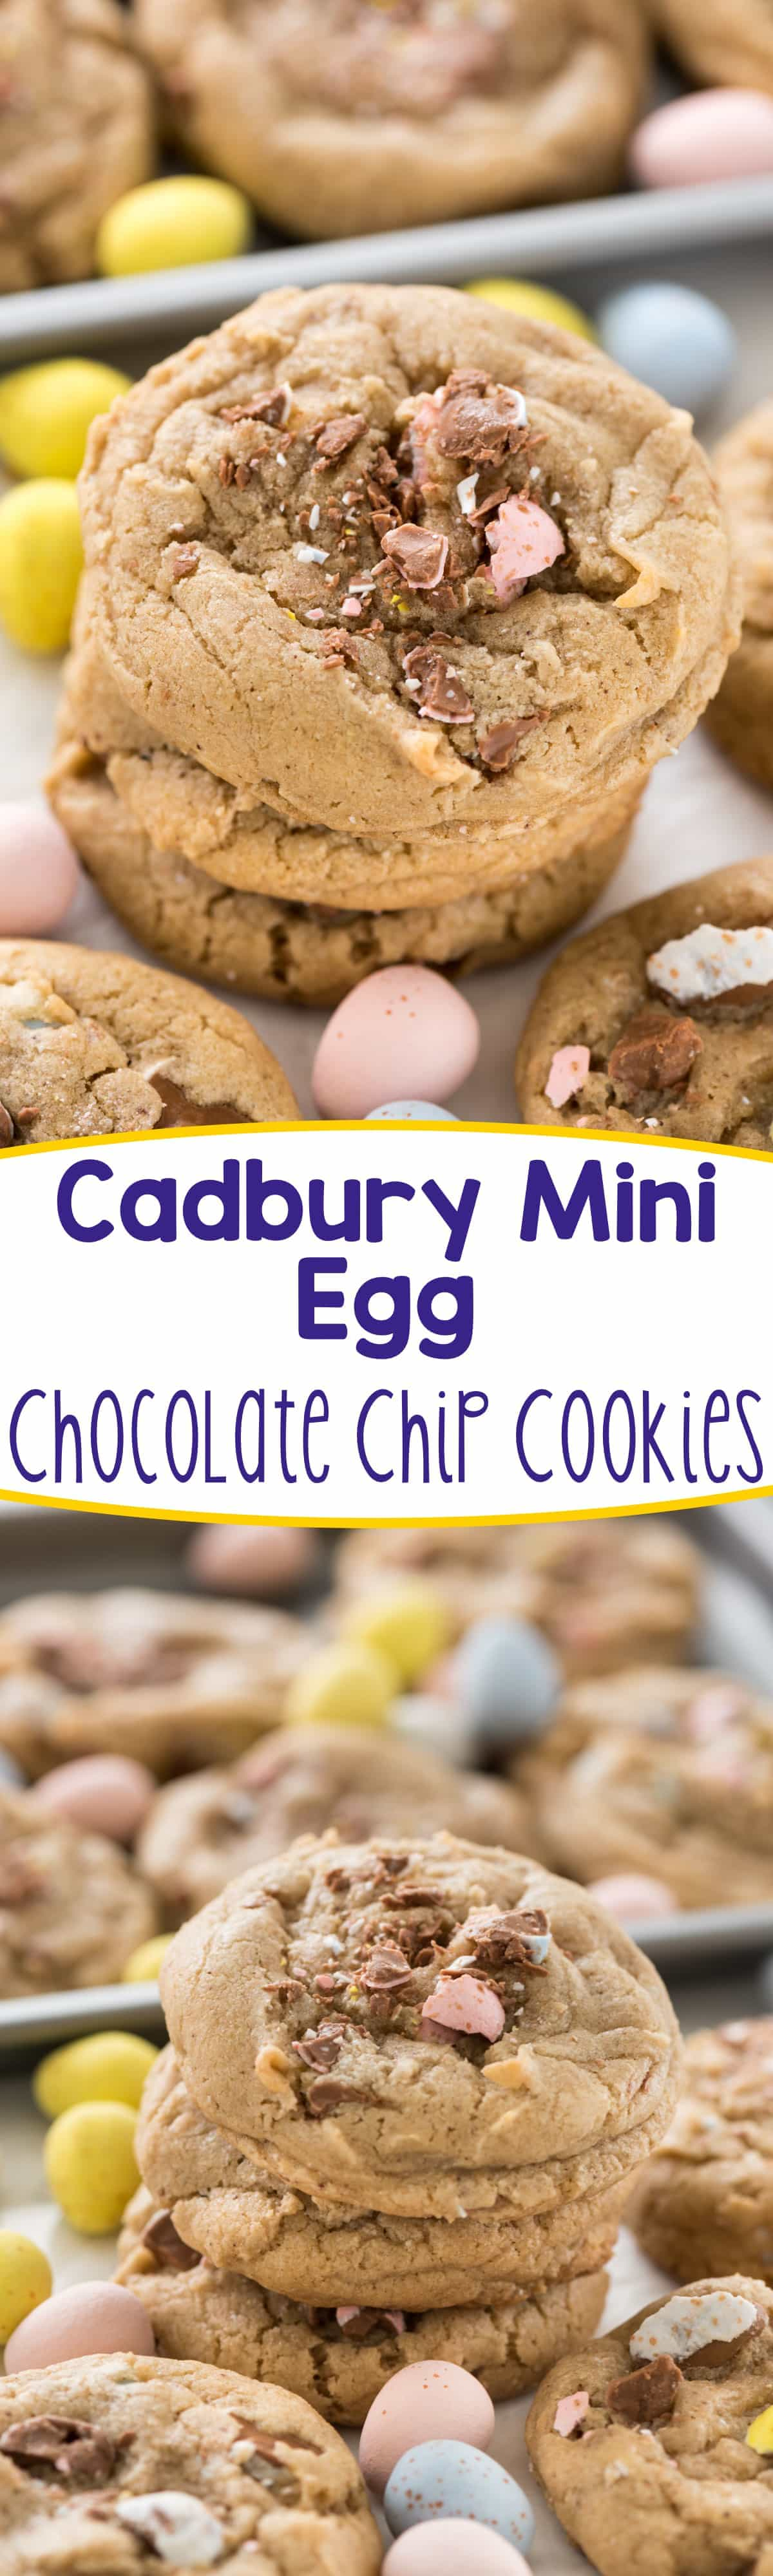 Cadbury Egg Cookies - this easy chocolate chip cookie recipe is filled with Cadbury Mini Eggs! They're the perfect Easter dessert.